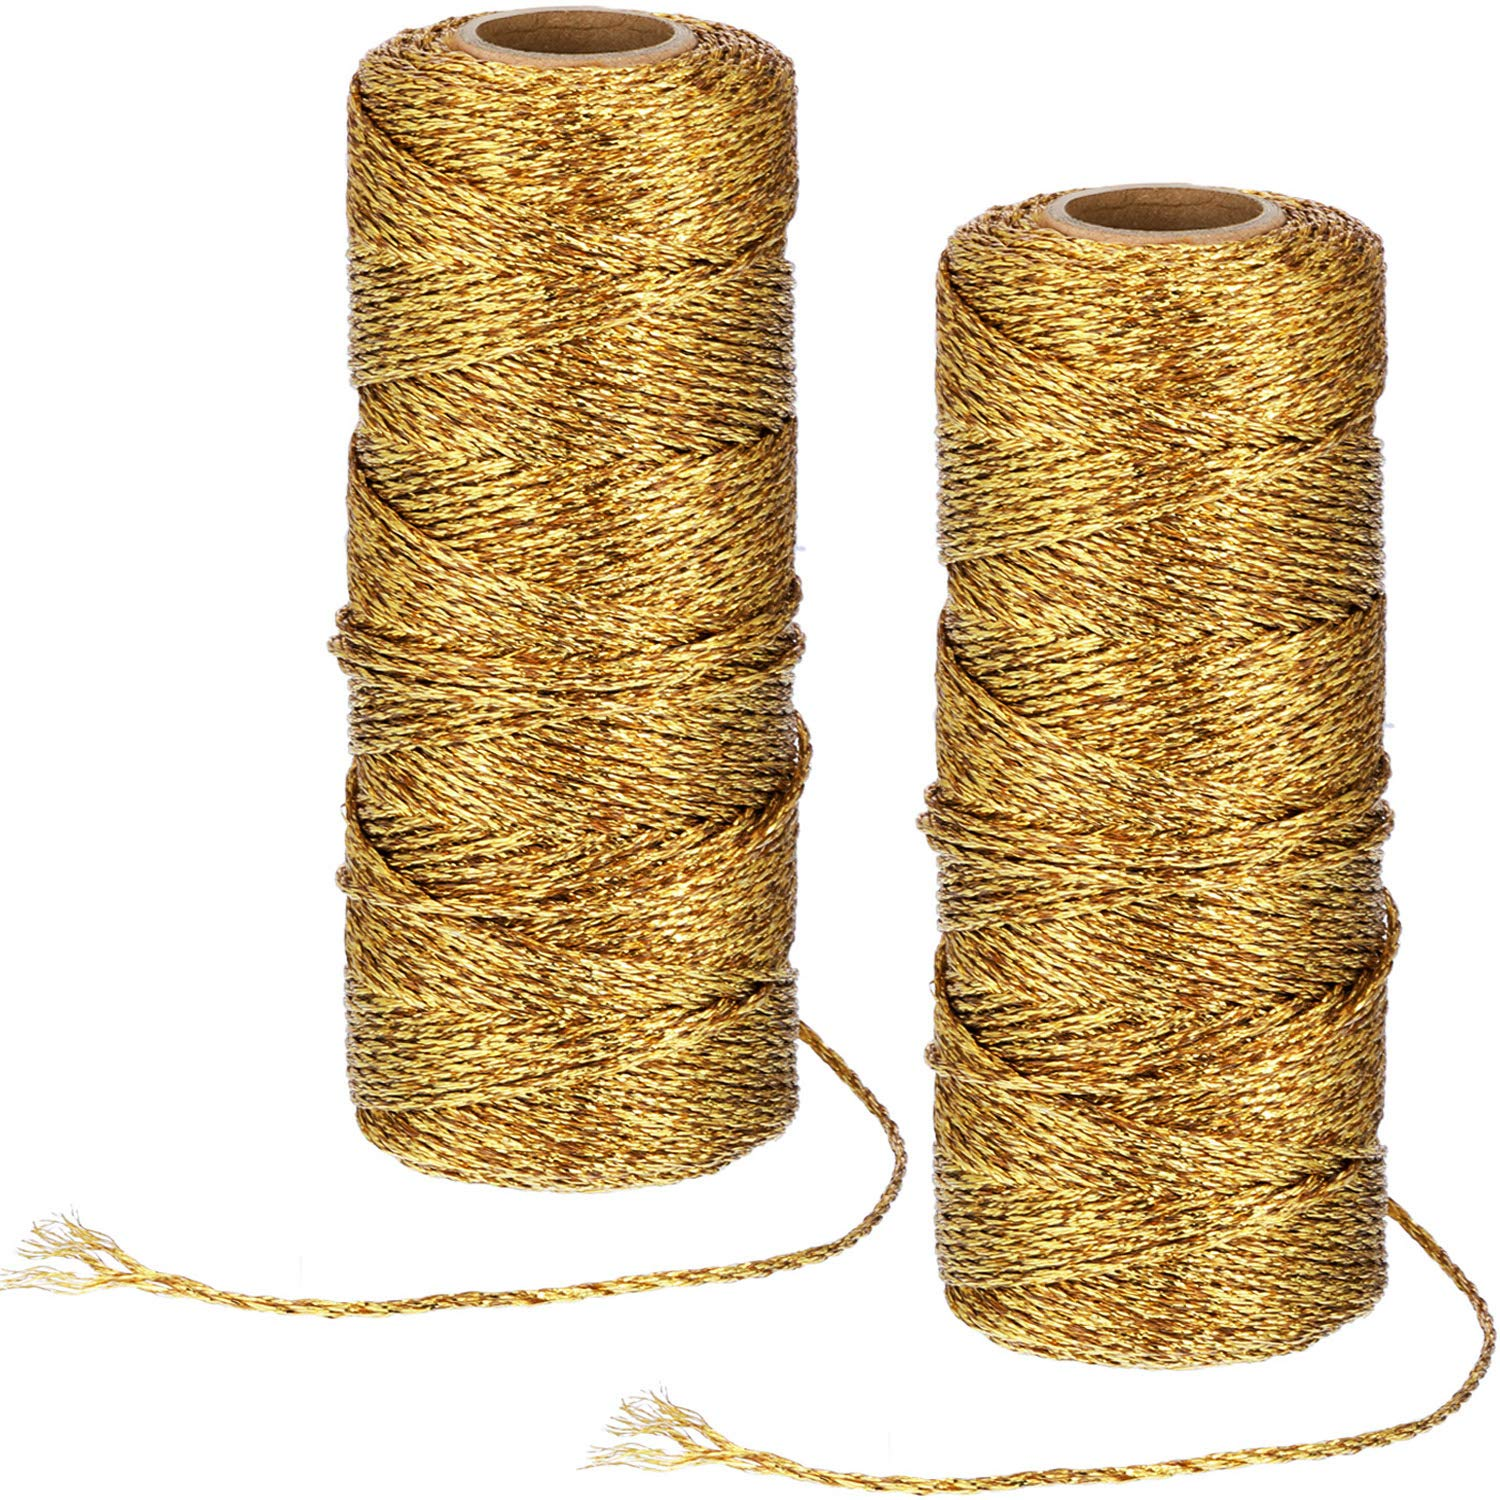 100 Yards Twine Gold//White Darice 30030708 Bakers Gold /& White